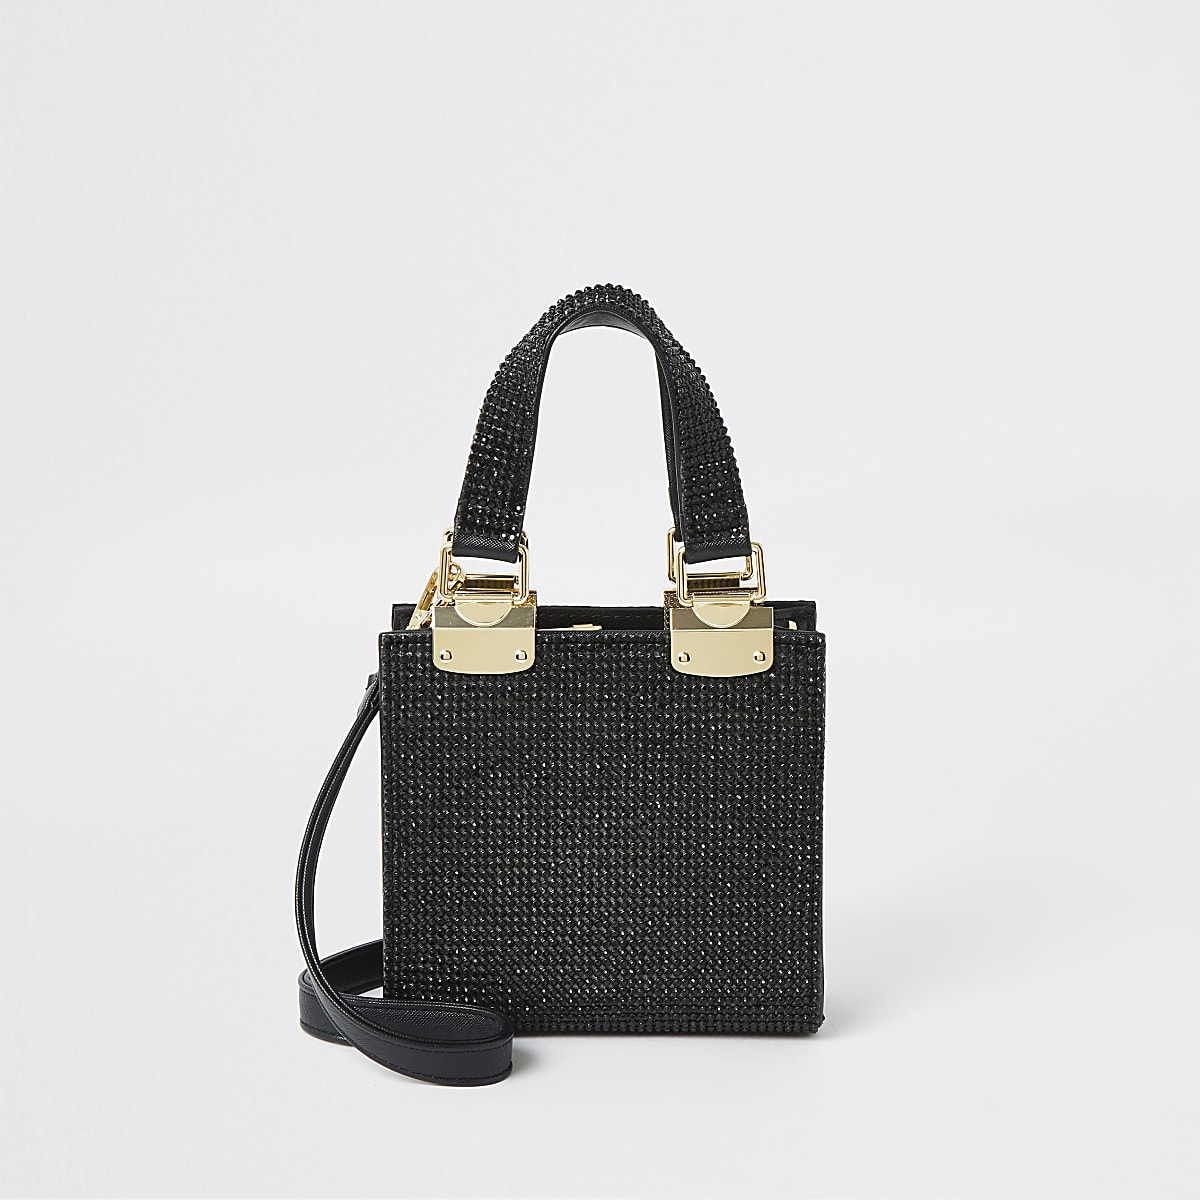 Black diamante mini cross body tote bag